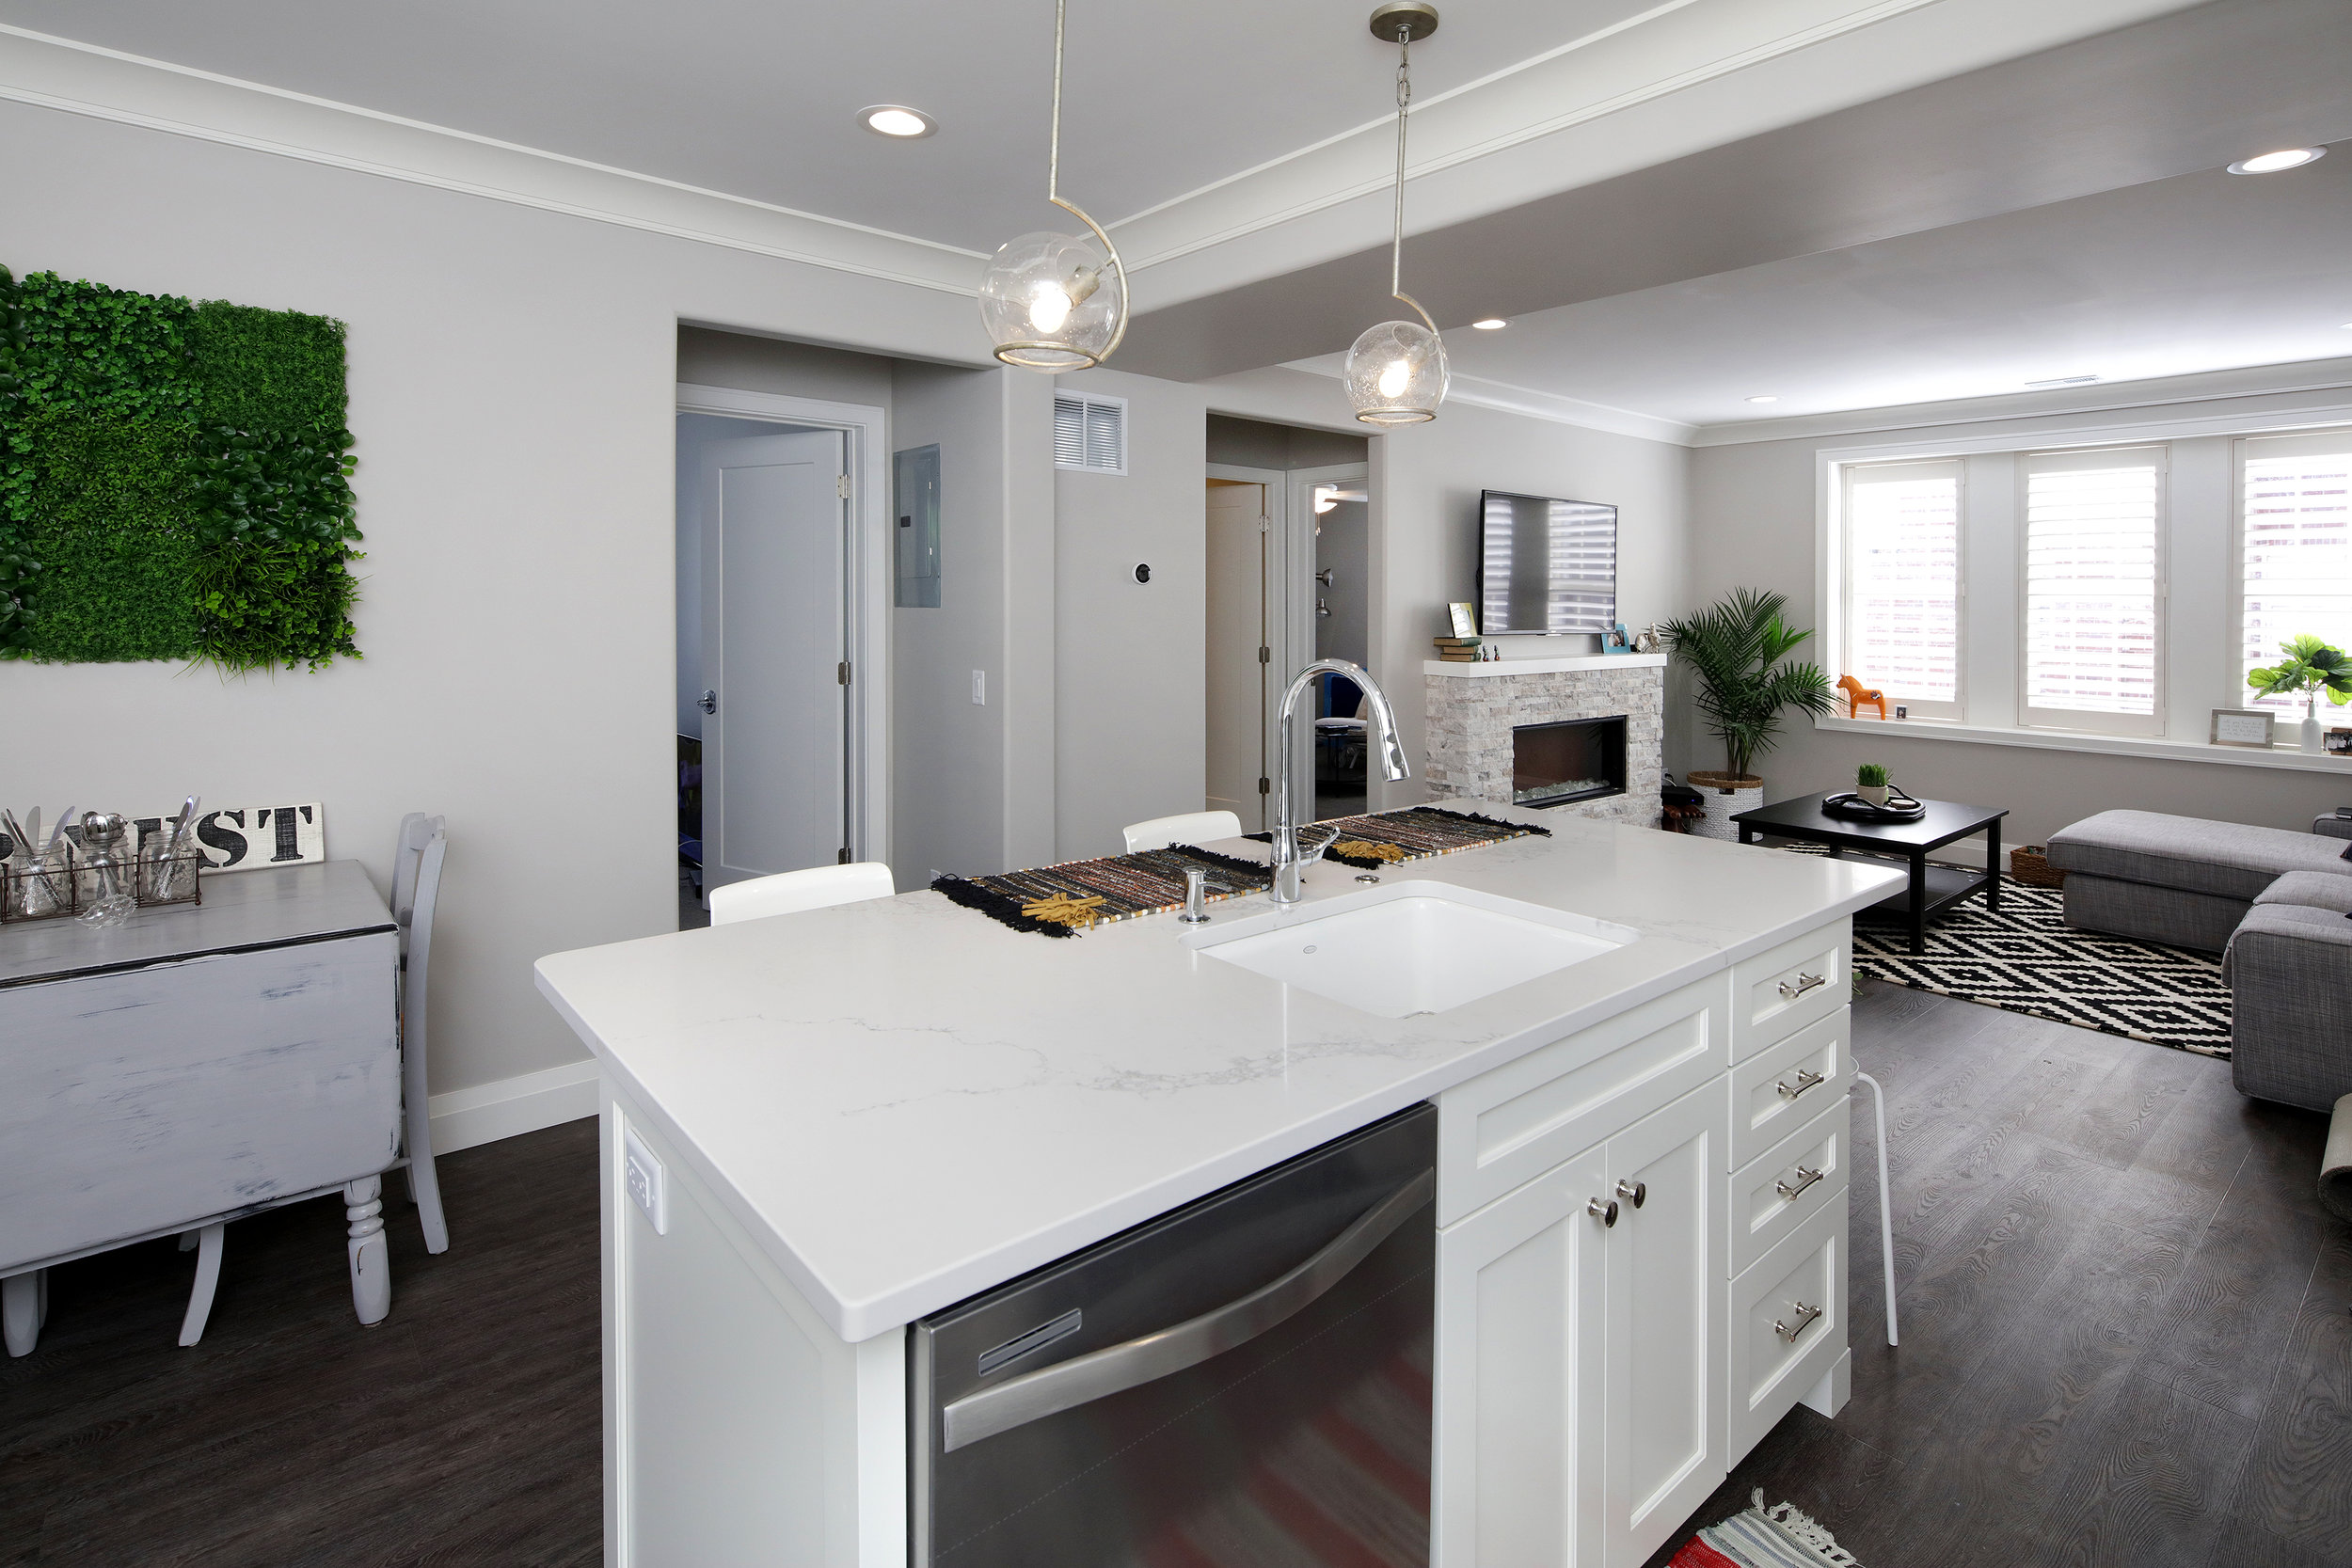 Two Bed Kitchen